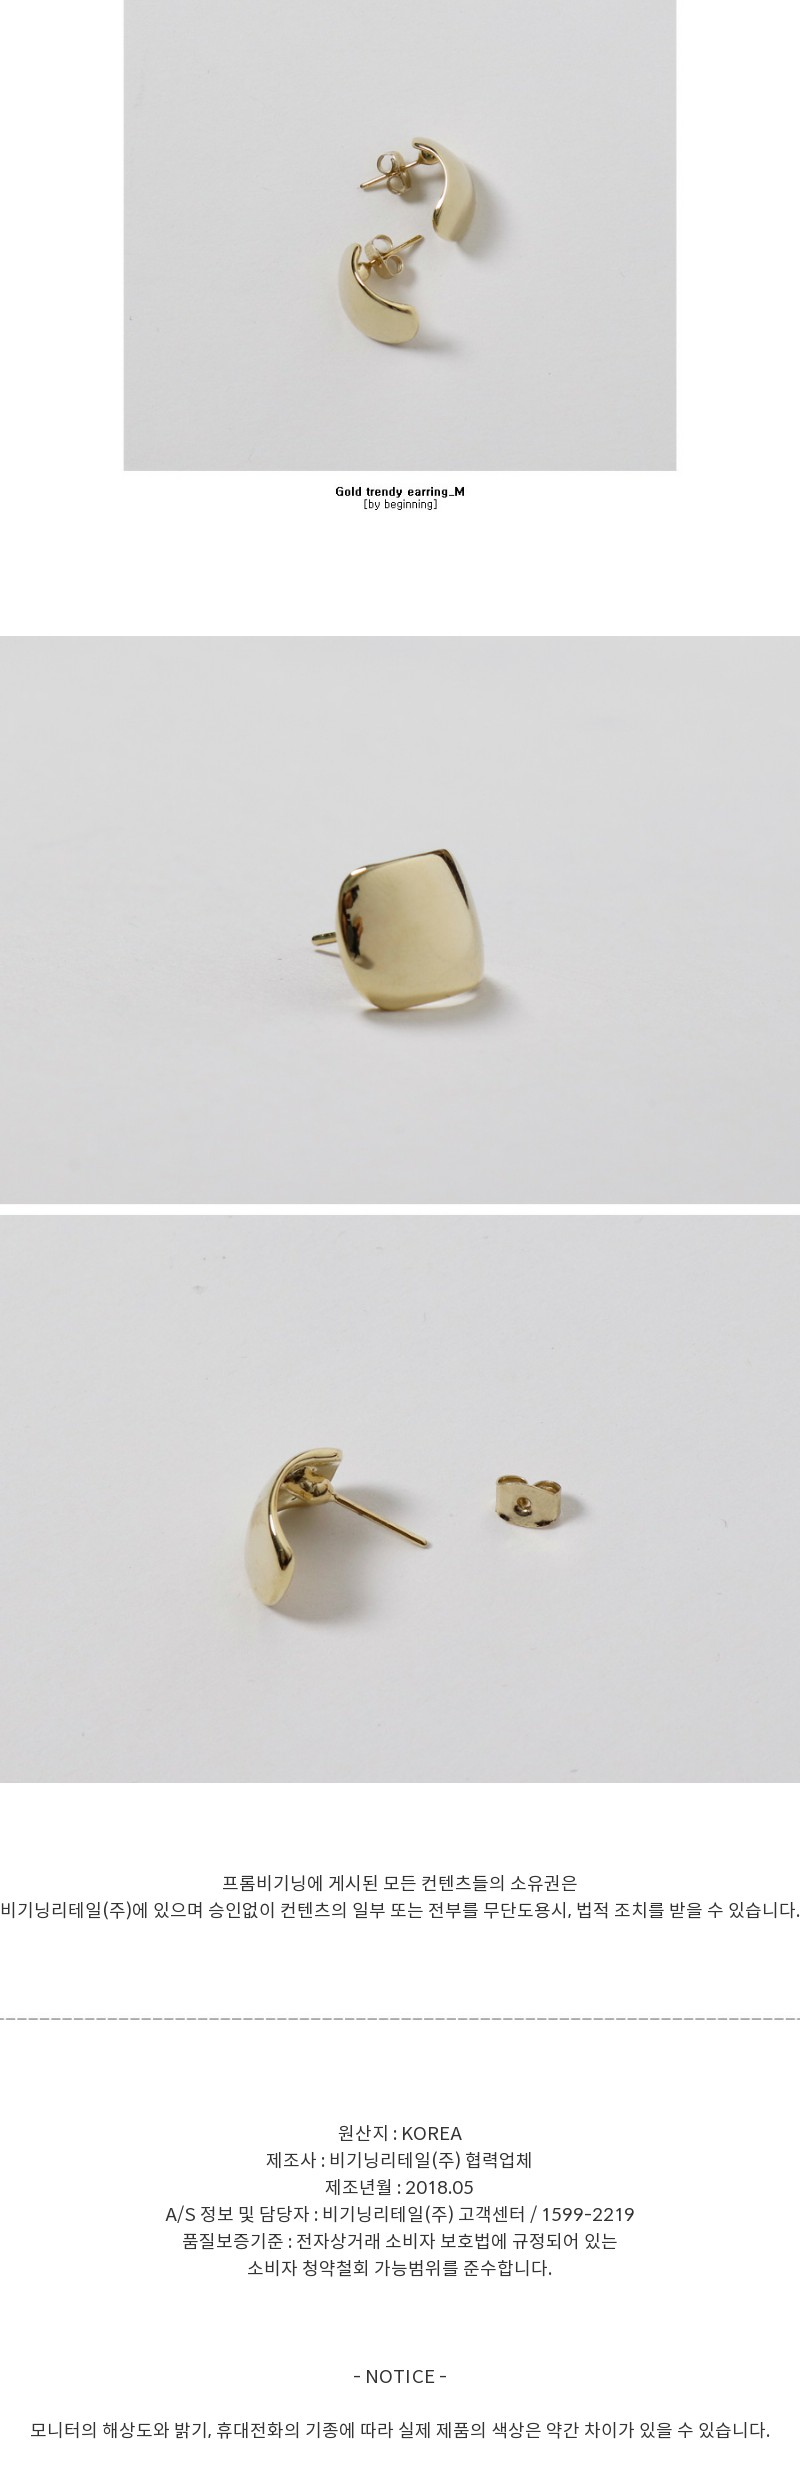 Gold trendy earring_M (size : one)